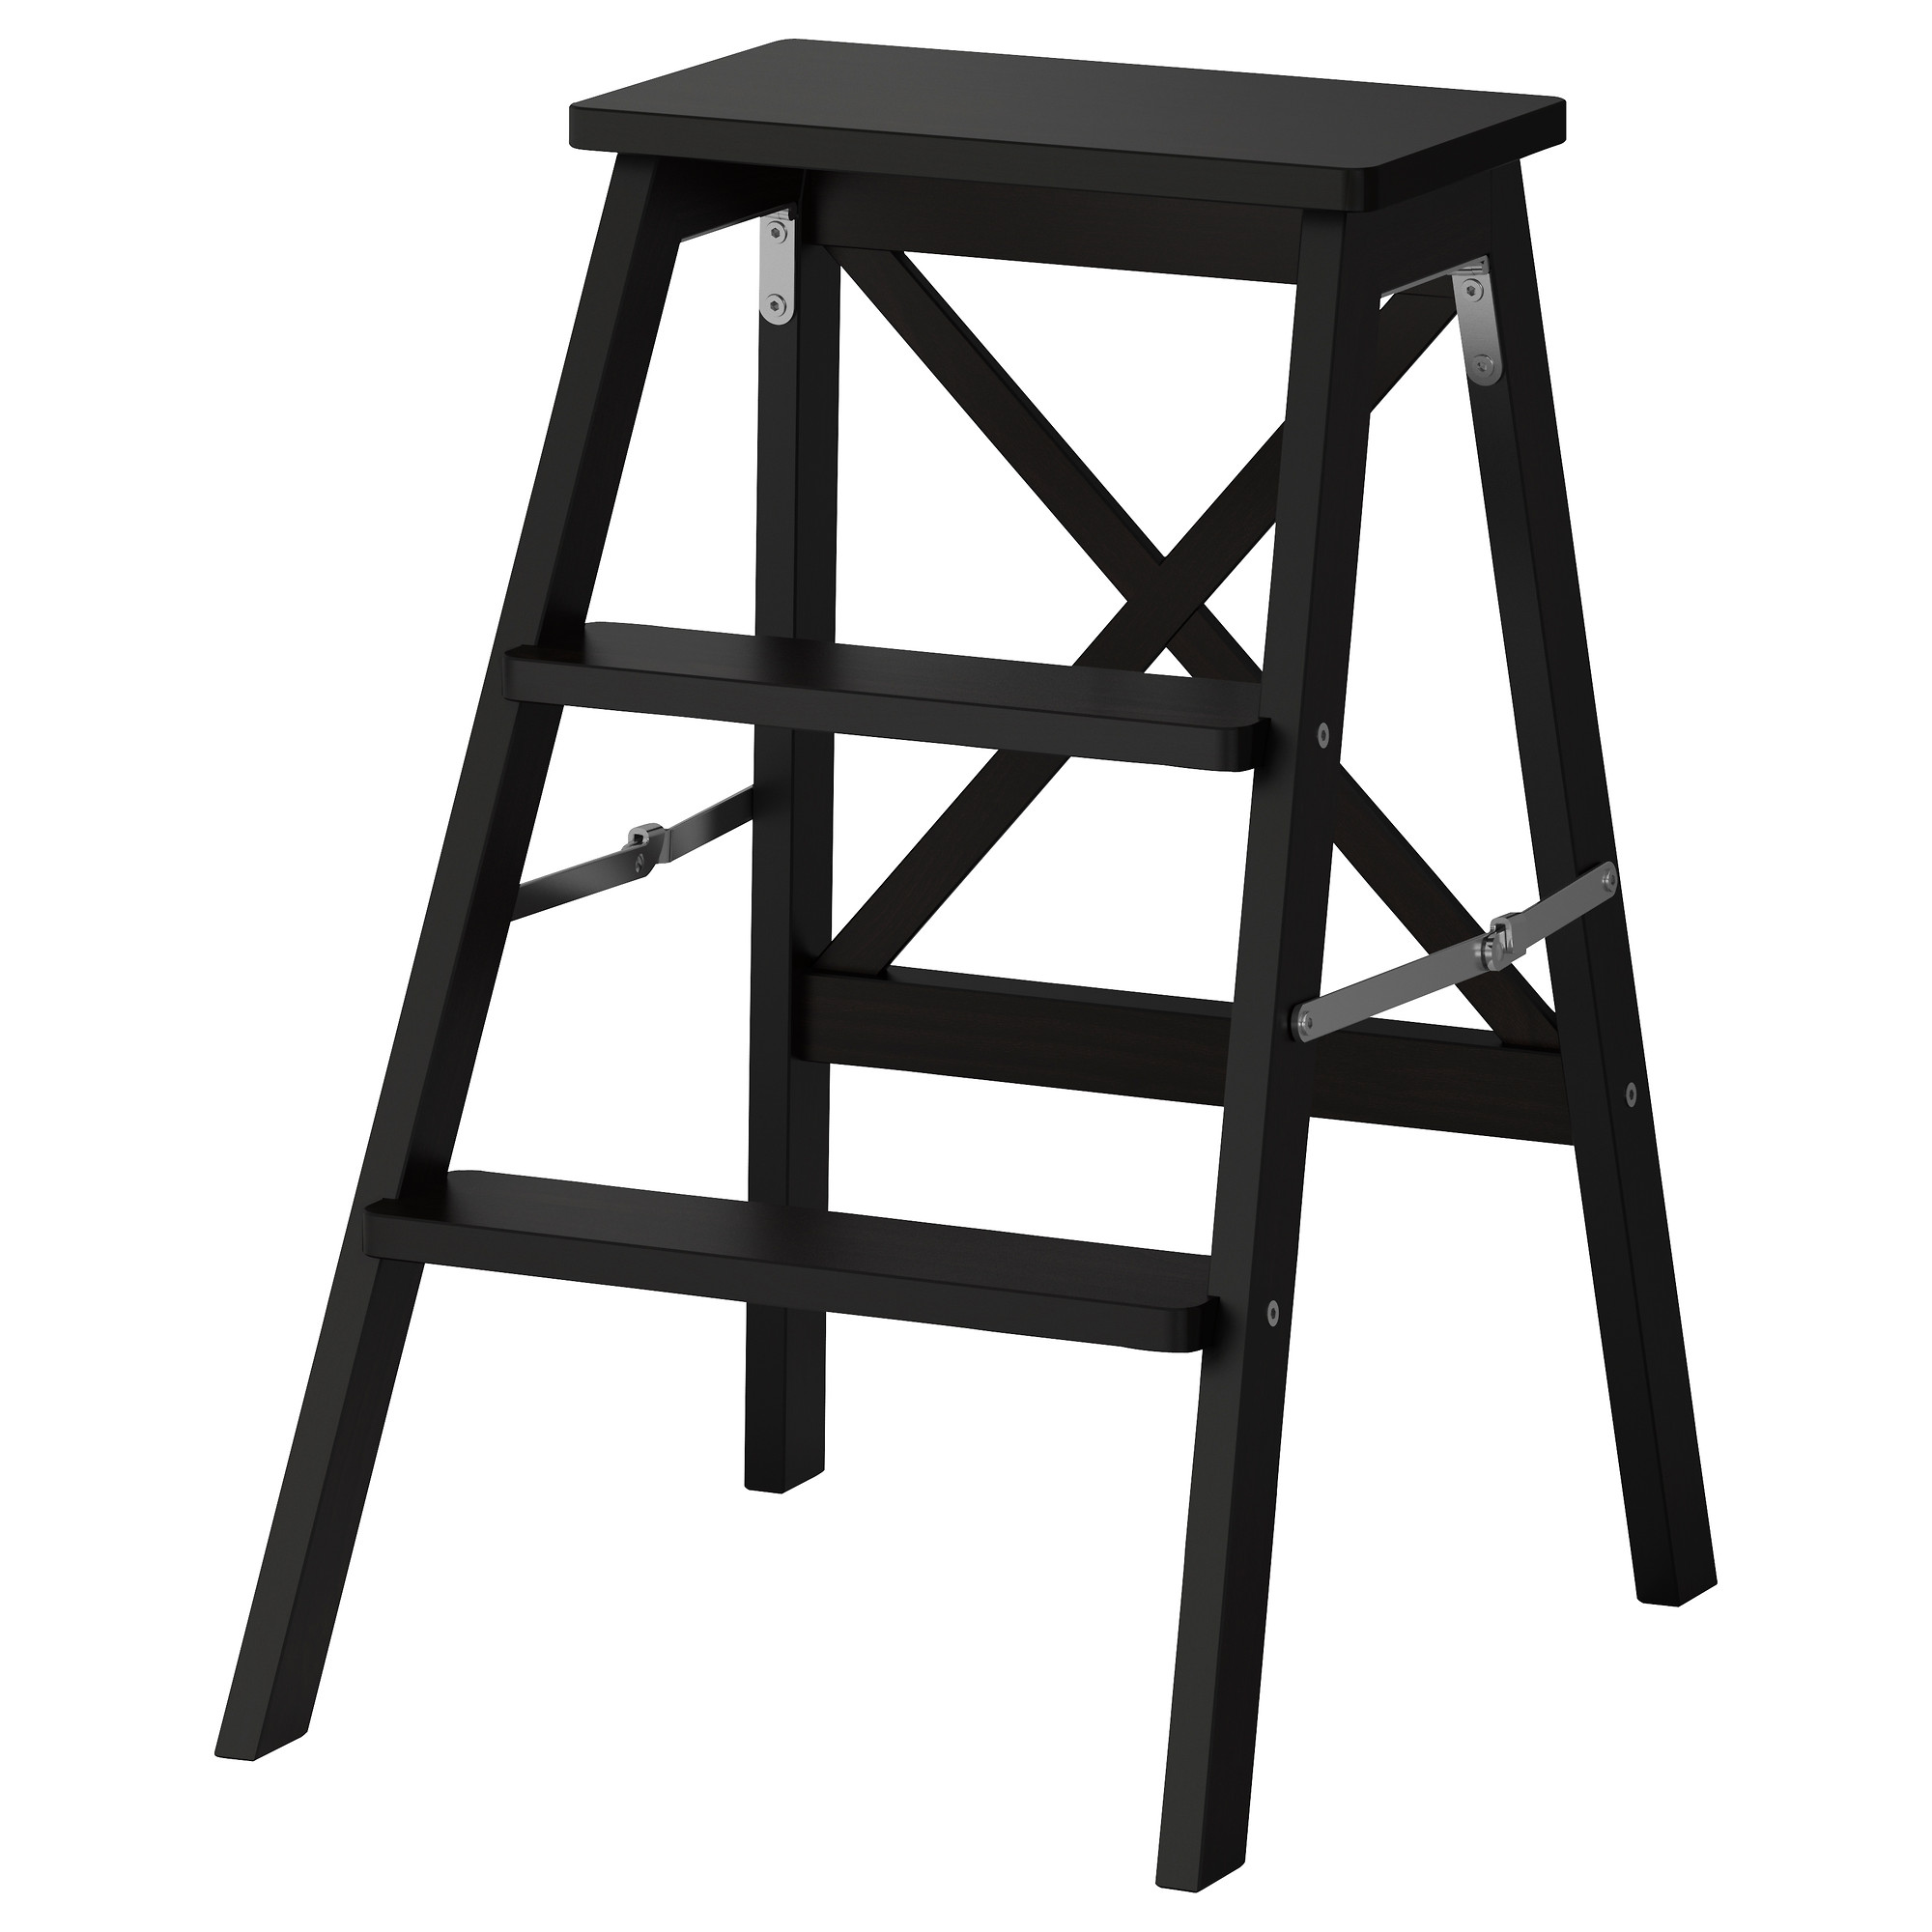 BEKVÄM stepladder 3 steps black Height 24 3/4   Max.  sc 1 st  Ikea & Kitchen Step Stools and Step Ladders - IKEA islam-shia.org